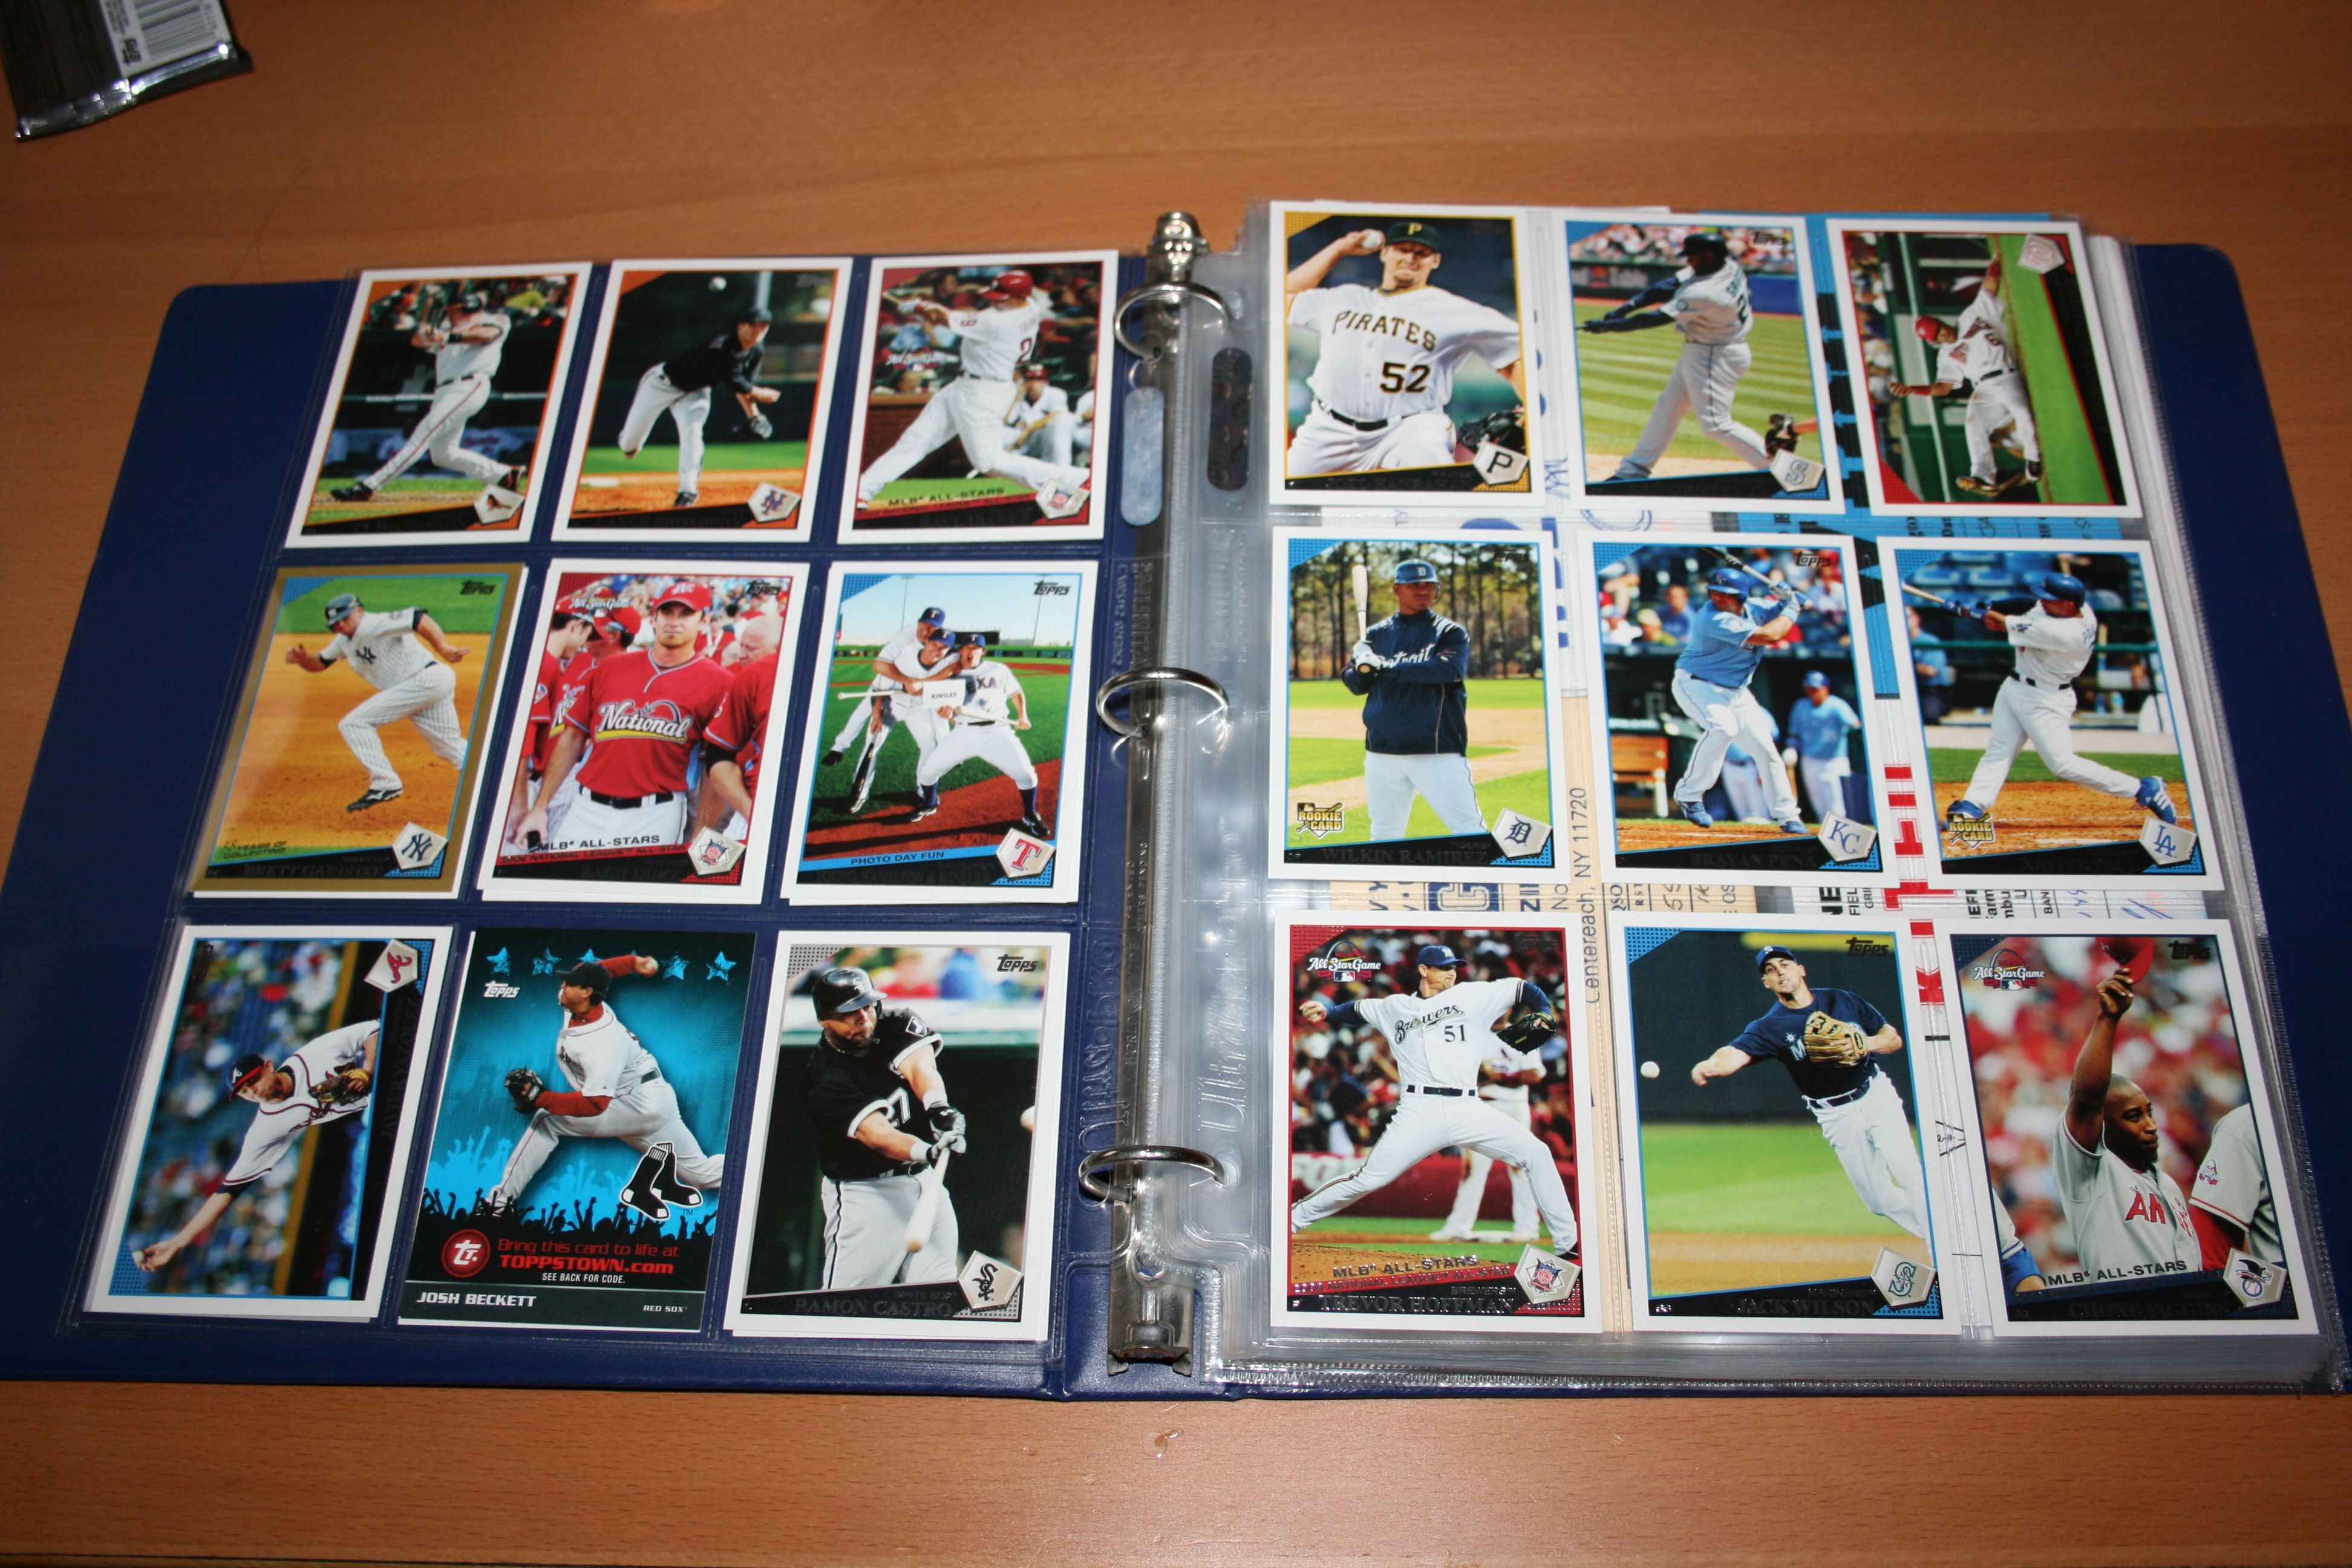 Featuring 10 collector sheet protectors unikeeps